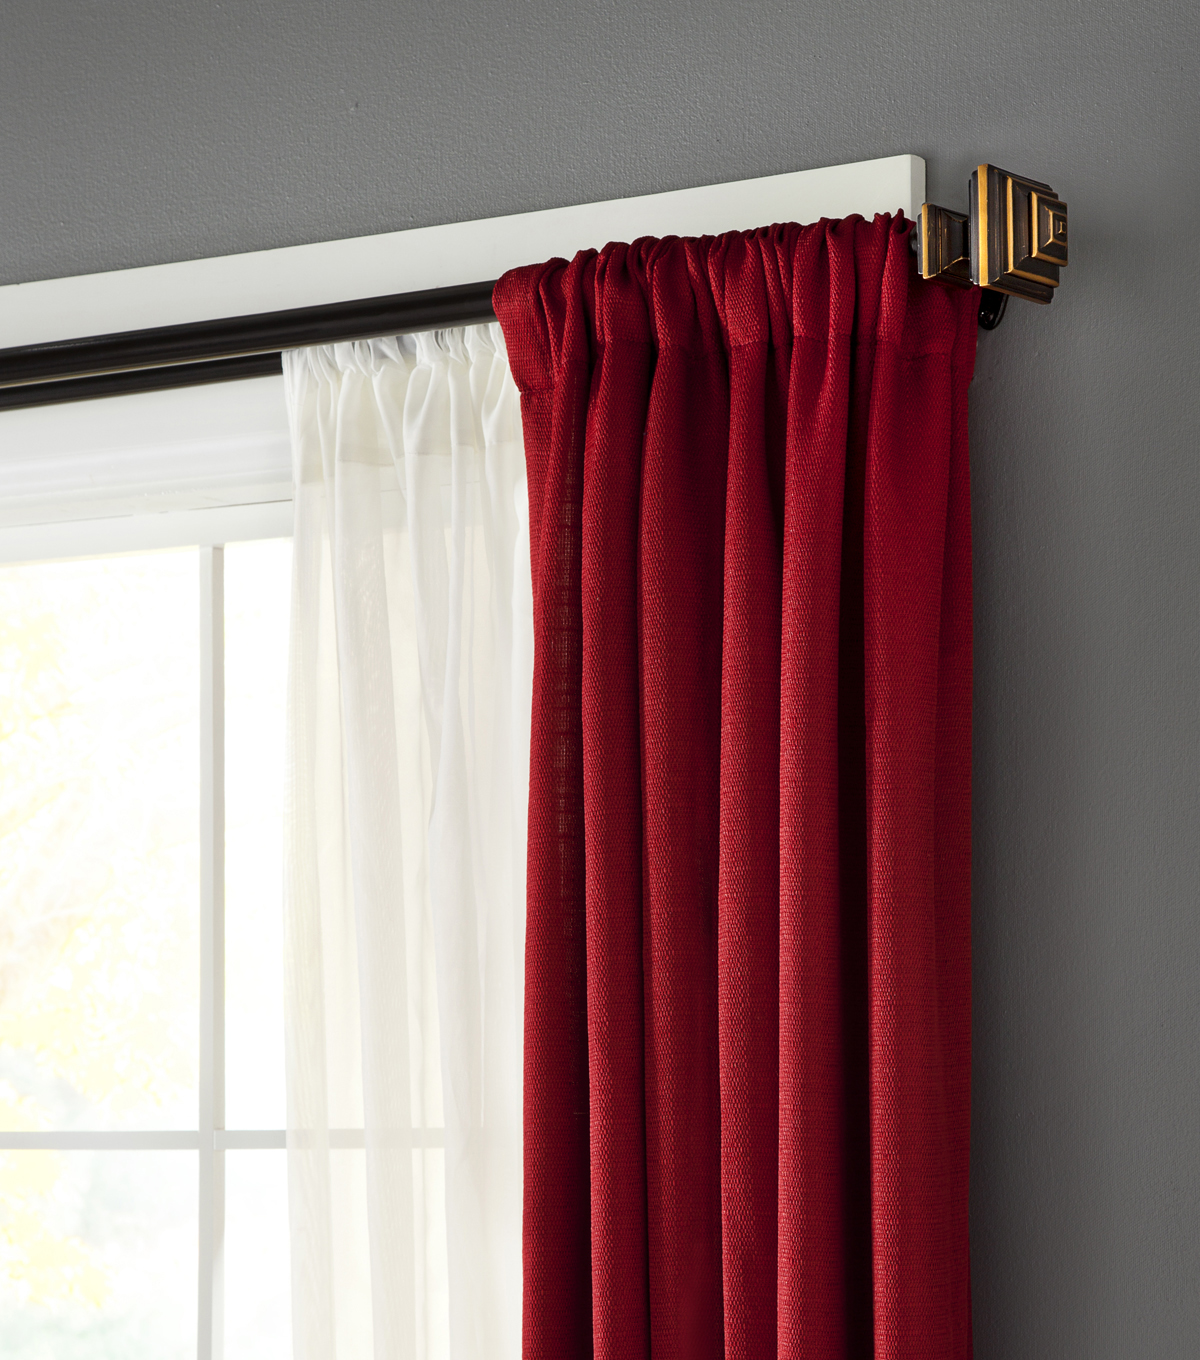 Kenney 33\u0022 to 66\u0022 3/4\u0022 Diameter Stacey Room Darkening Double Curtain Rod